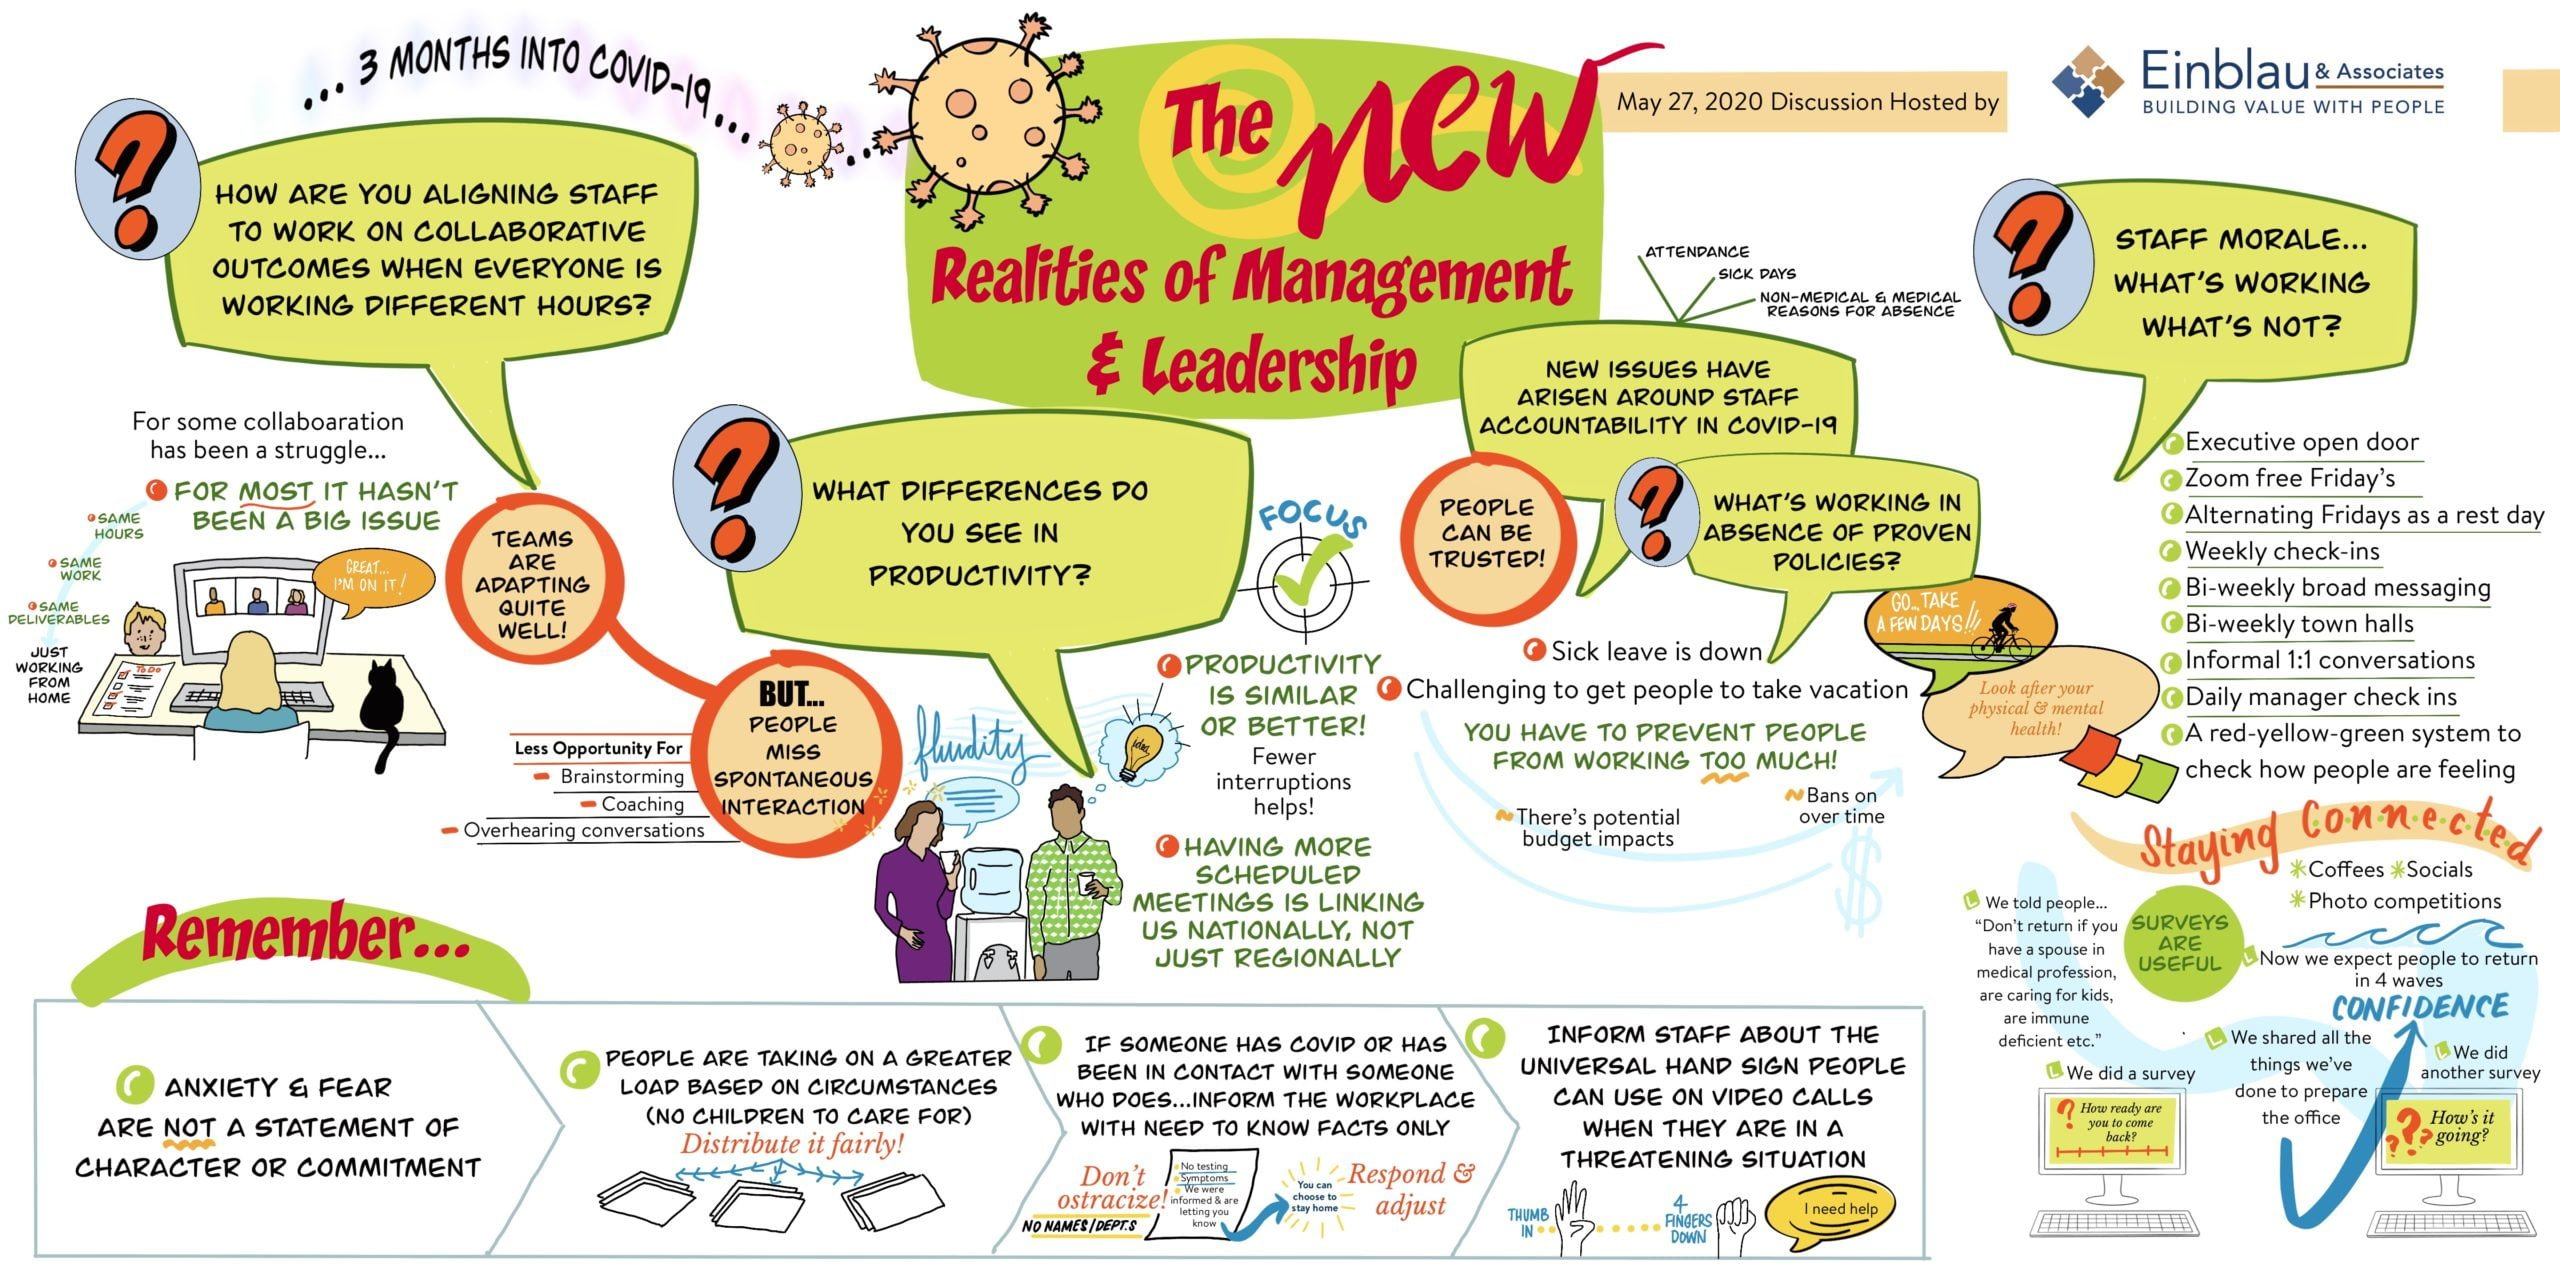 New realities of management